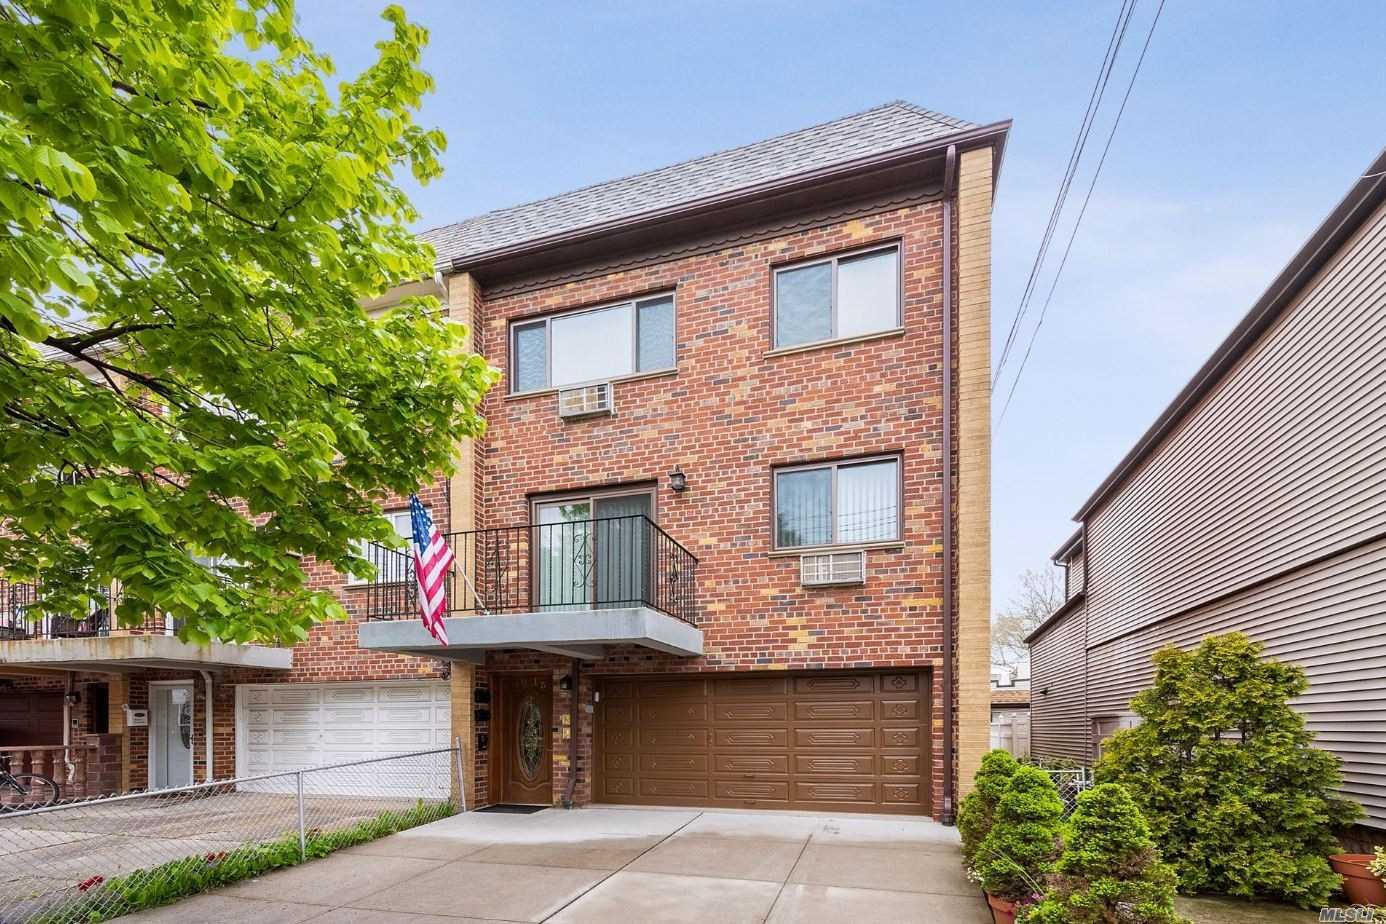 Fantastic Investment! This rare solid brick large semi-detached property features 6 rms, 3 bdrms + 1 full bth on 3rd fl, 6 rms, 3 bdrms + 1 full bth on 2nd fl w/ terrace, 3 rms on 1st fl plus a full finished basement, private yard & private driveway & garage in front....